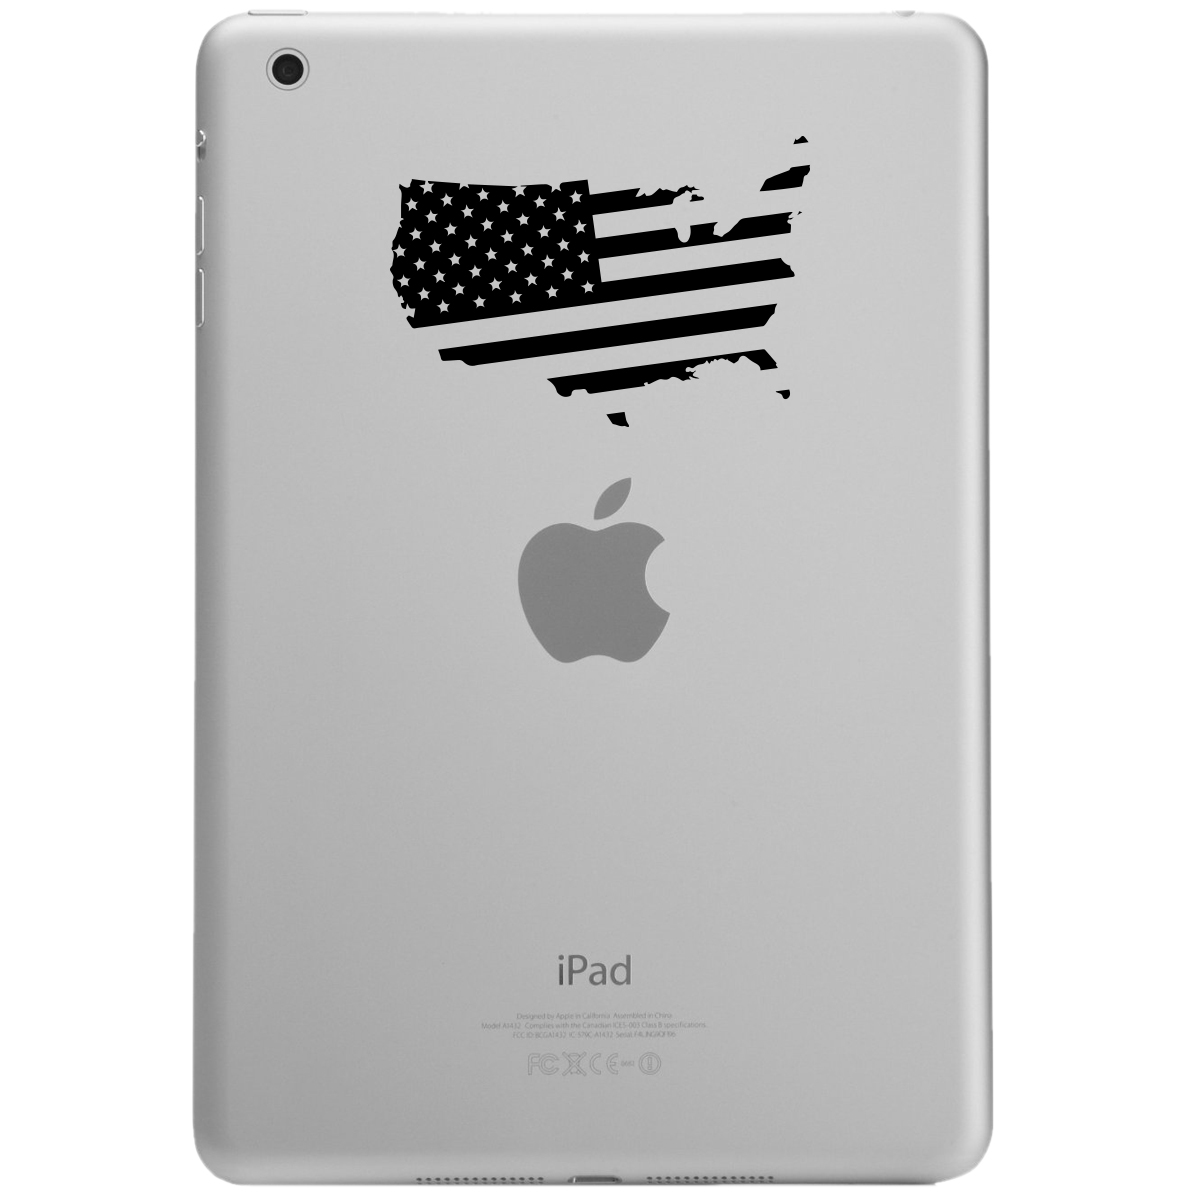 Patriotic USA Country American Flag iPad Tablet Vinyl Sticker Decal